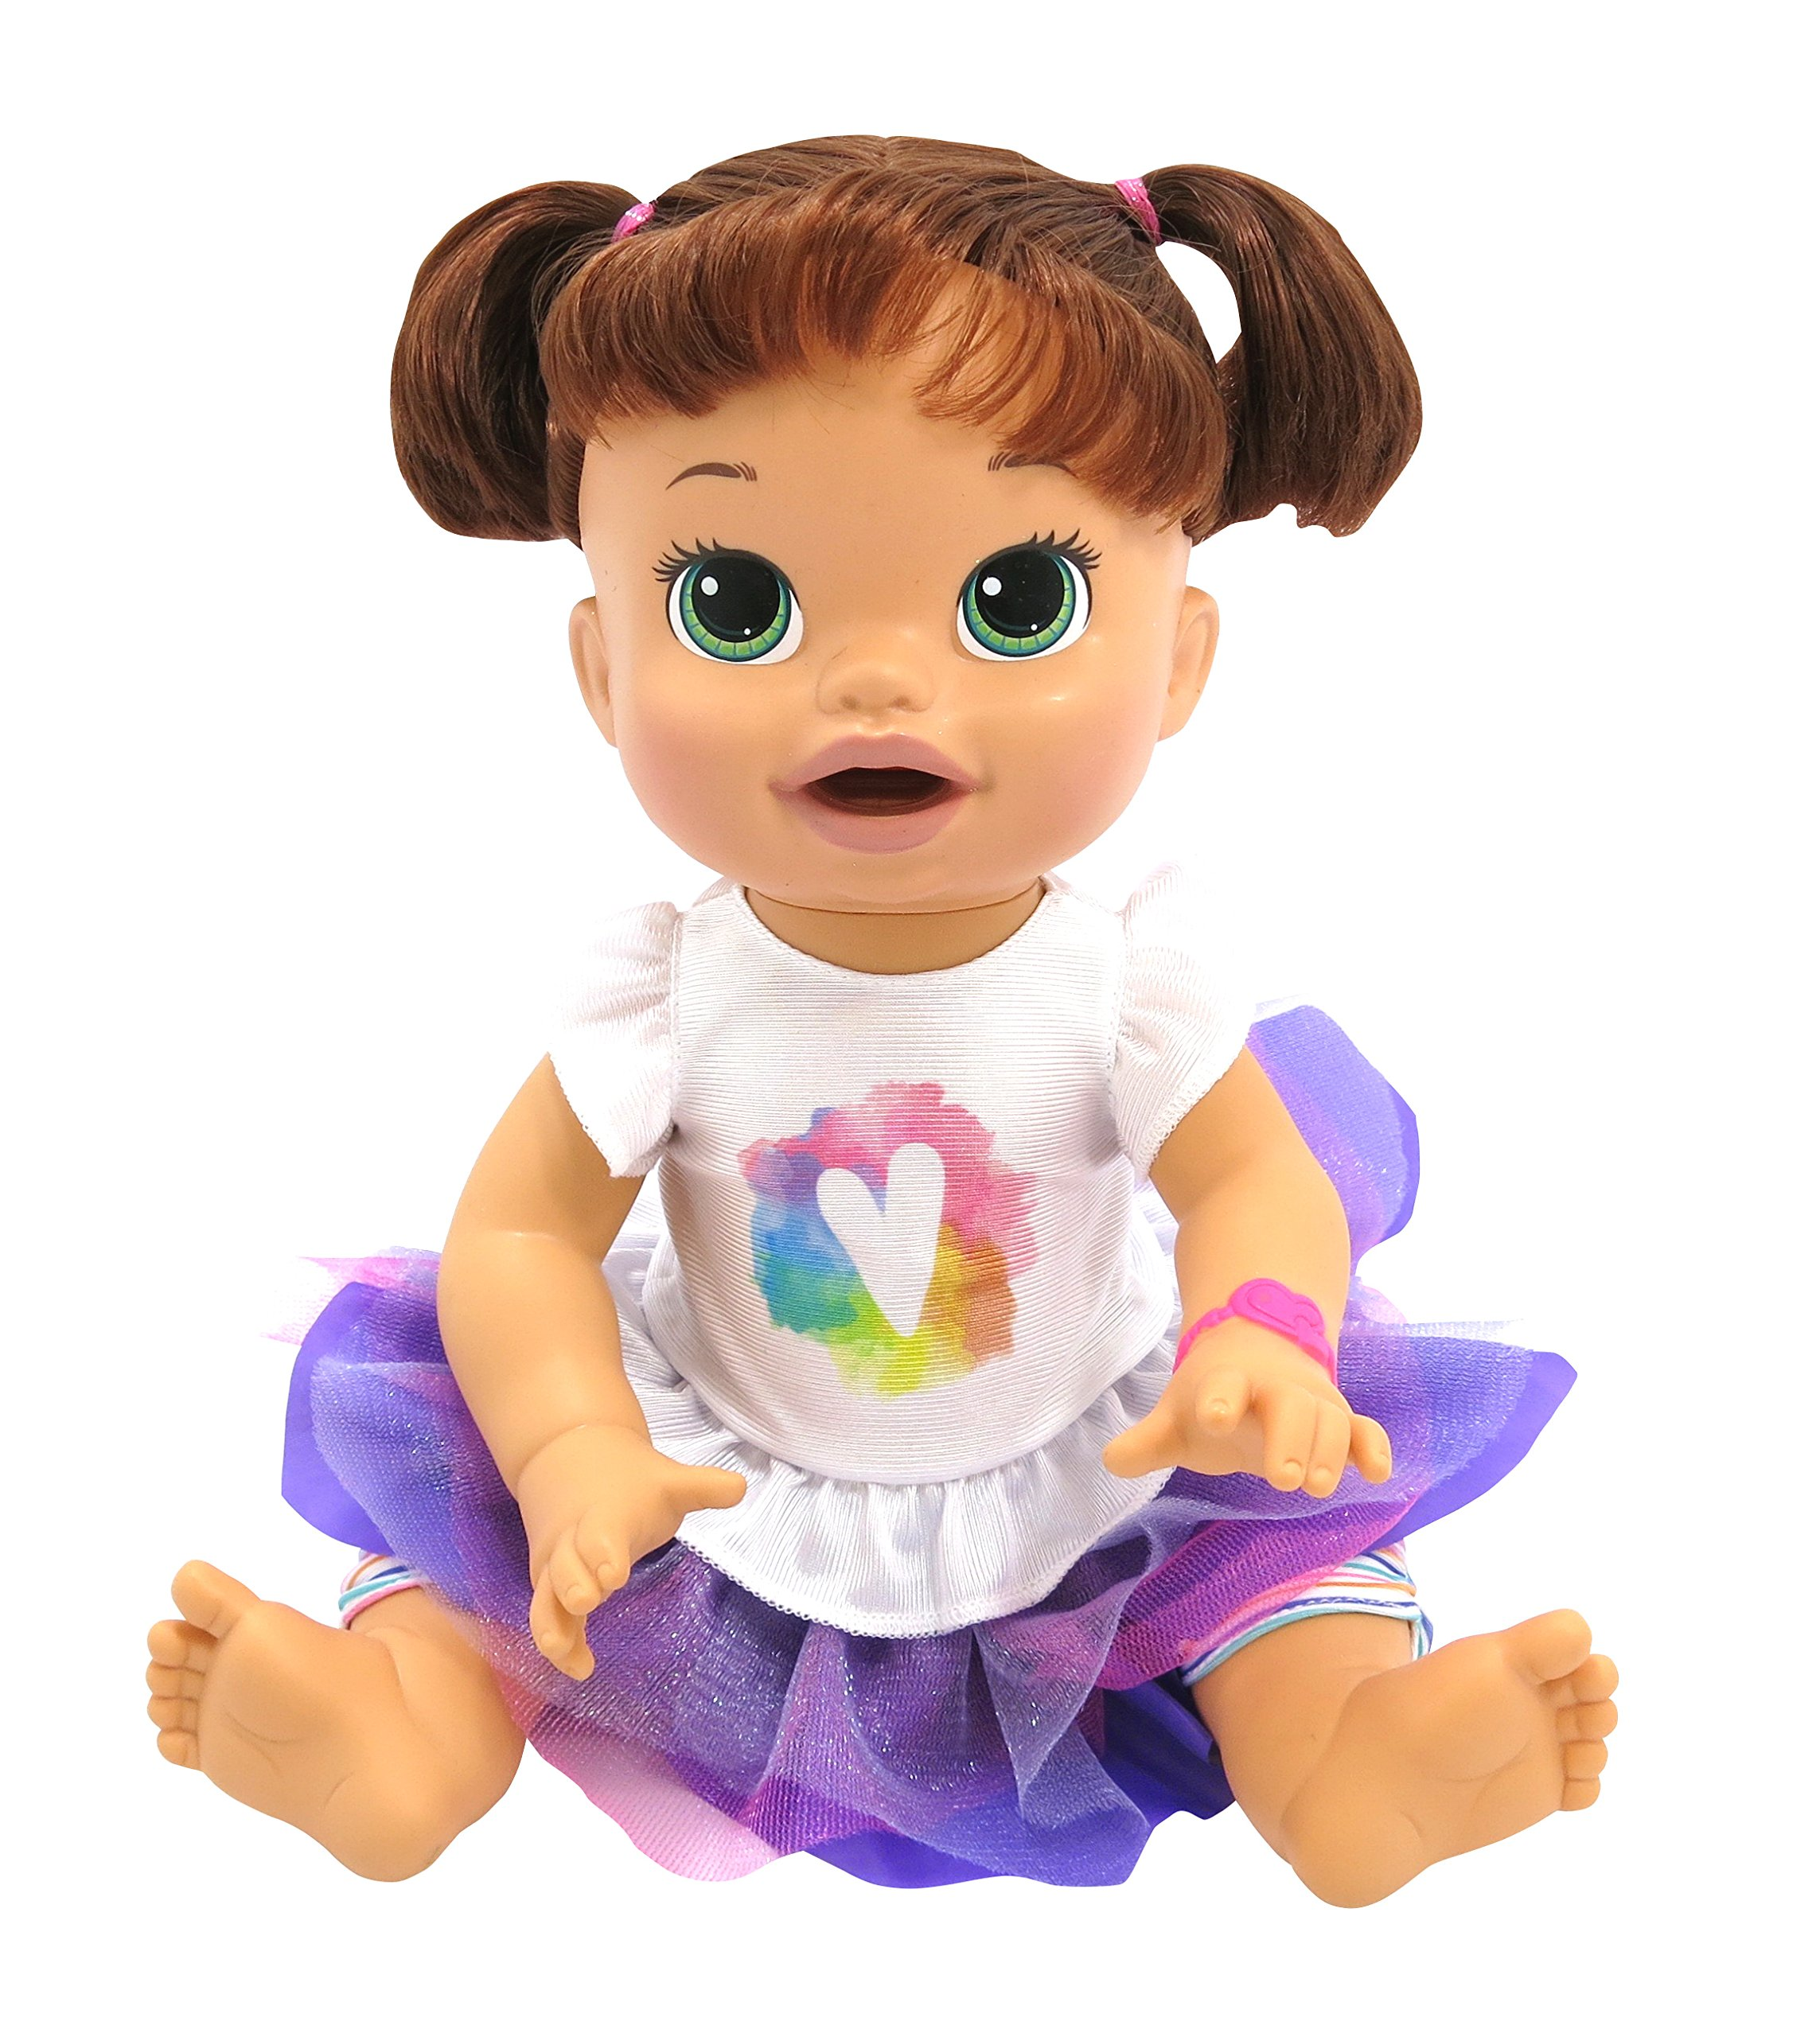 Baby Alive Doll Stroller Toy Buy Online In Bangladesh Baby Alive Products In Bangladesh See Prices Reviews And Free Delivery Over 5 800 Desertcart